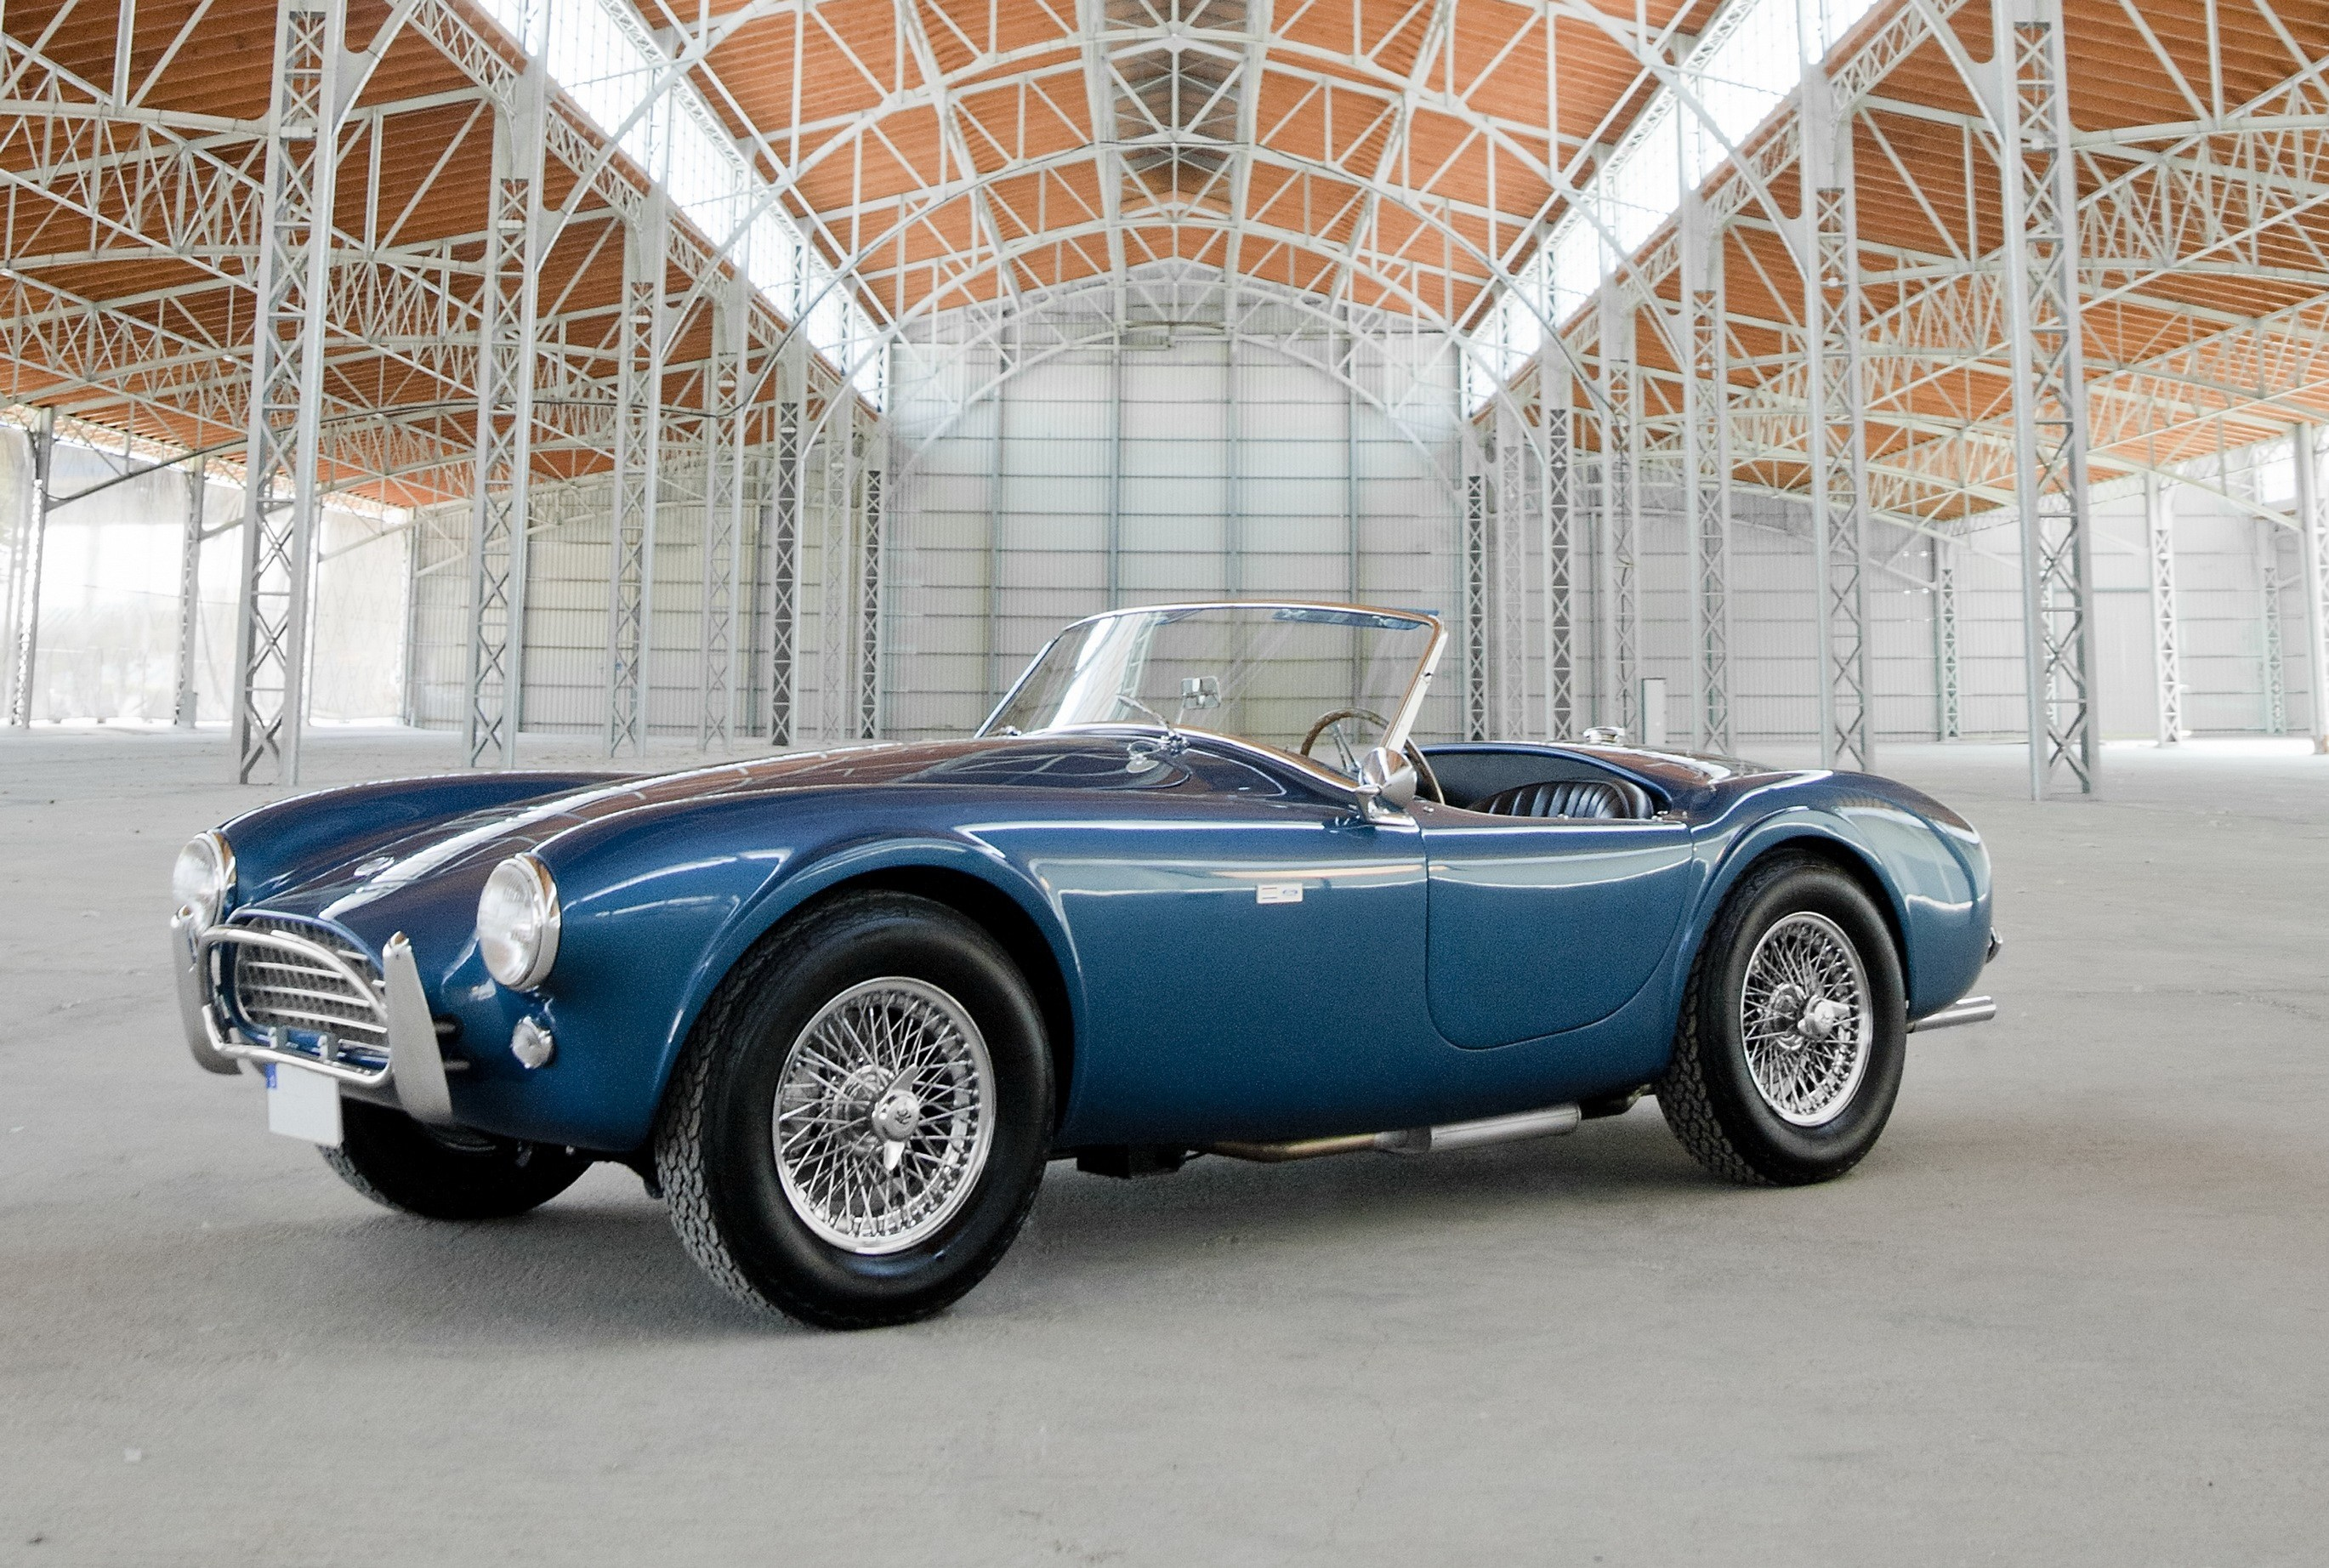 1963 Shelby Cobra 289 Mk. I in Guardsman Blue (linke Seite)